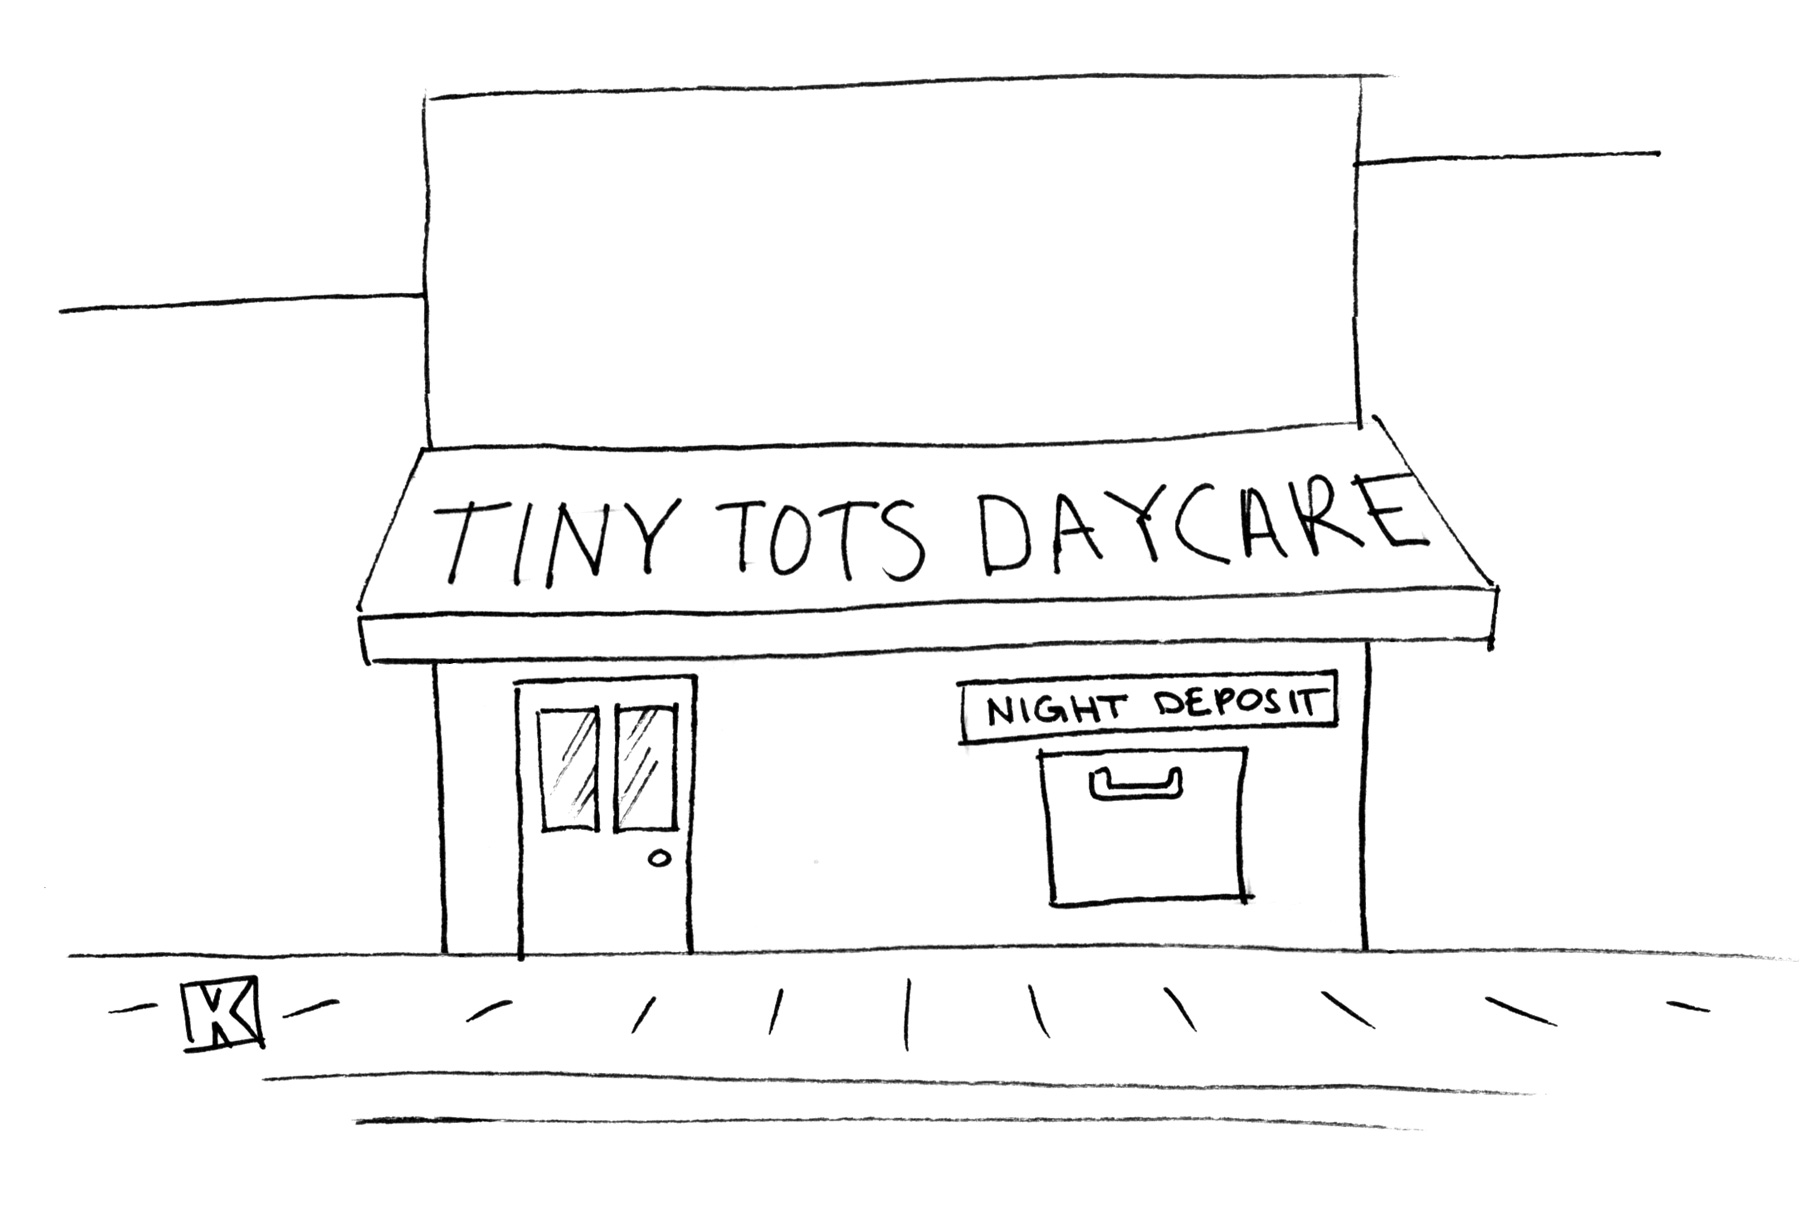 (Building has sign: 'Tiny Tots Daycare.' A smaller sign says 'Night Deposit.')